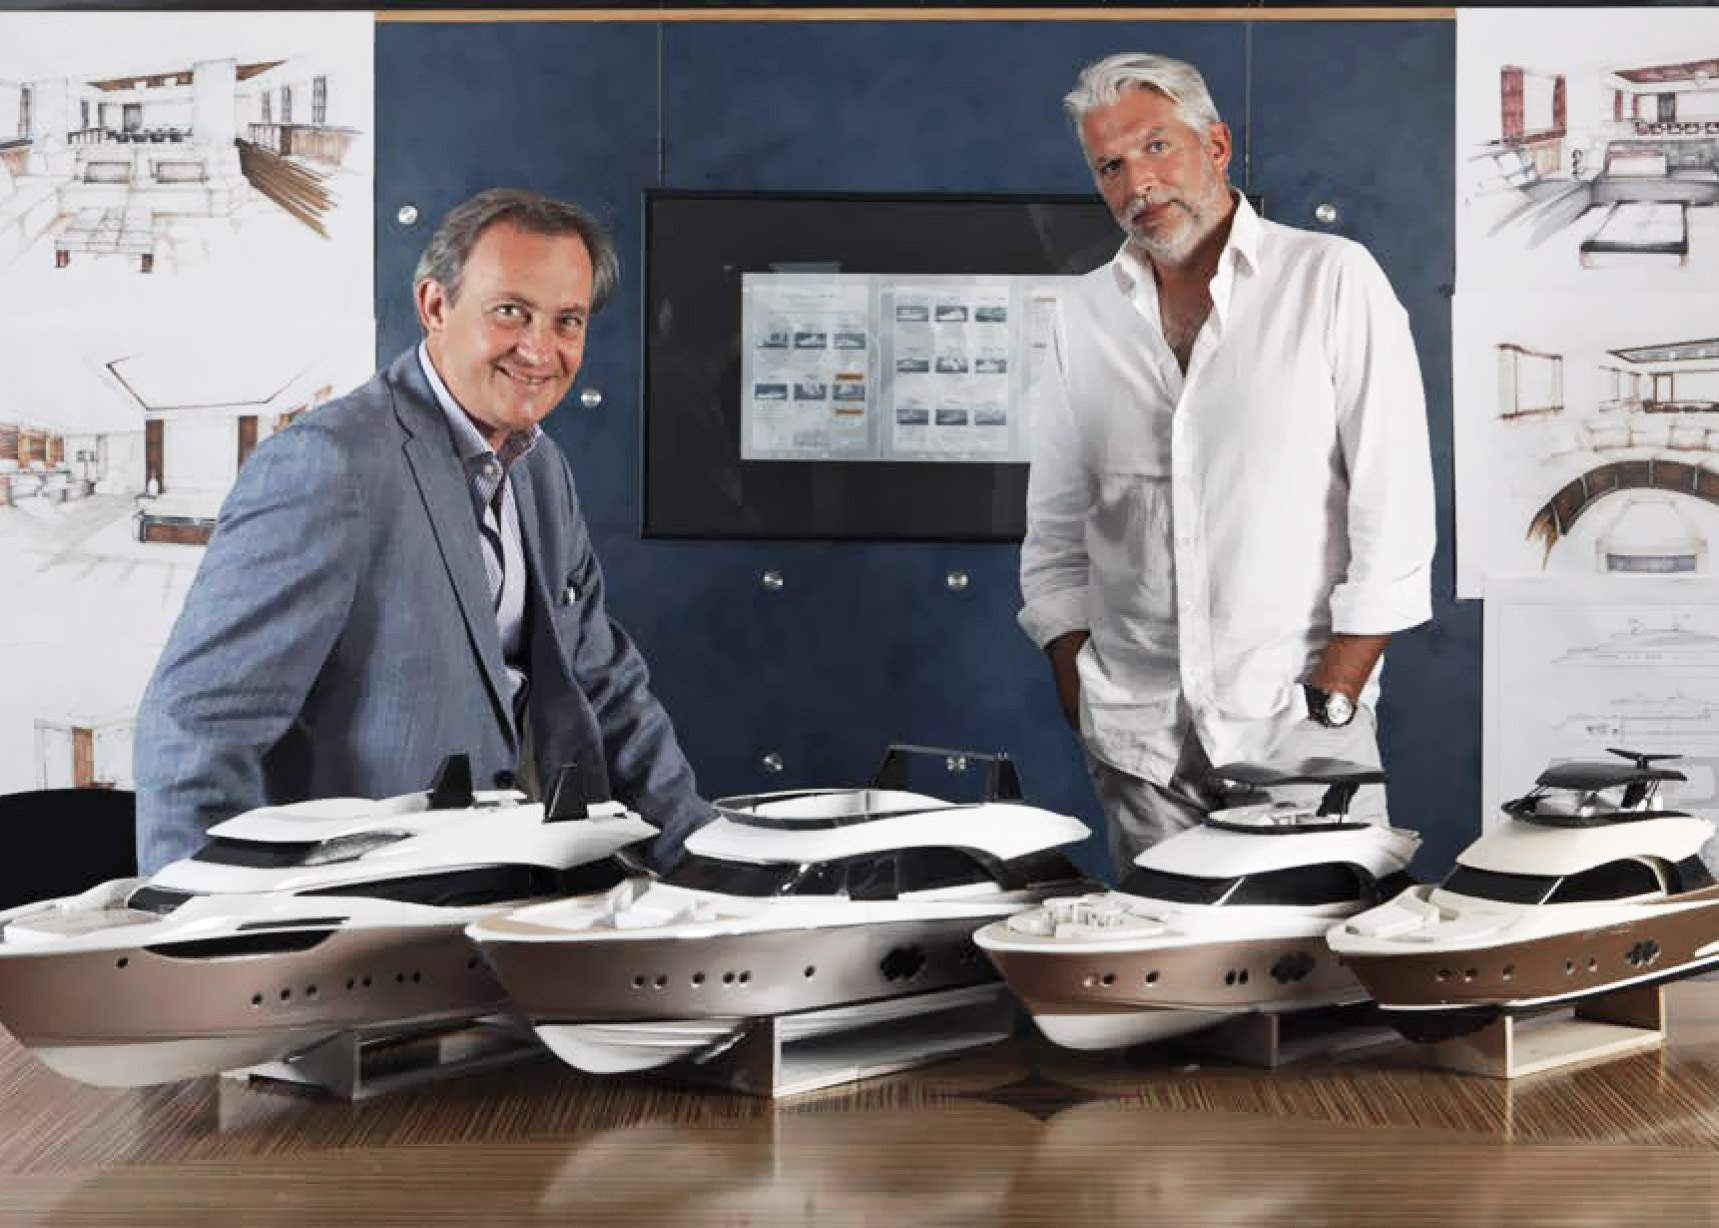 Together with Carlo Nuvolari and Dan Lenard, Monte Carlo Yachts has redefined the meaning of words such as style, functionality and customization.